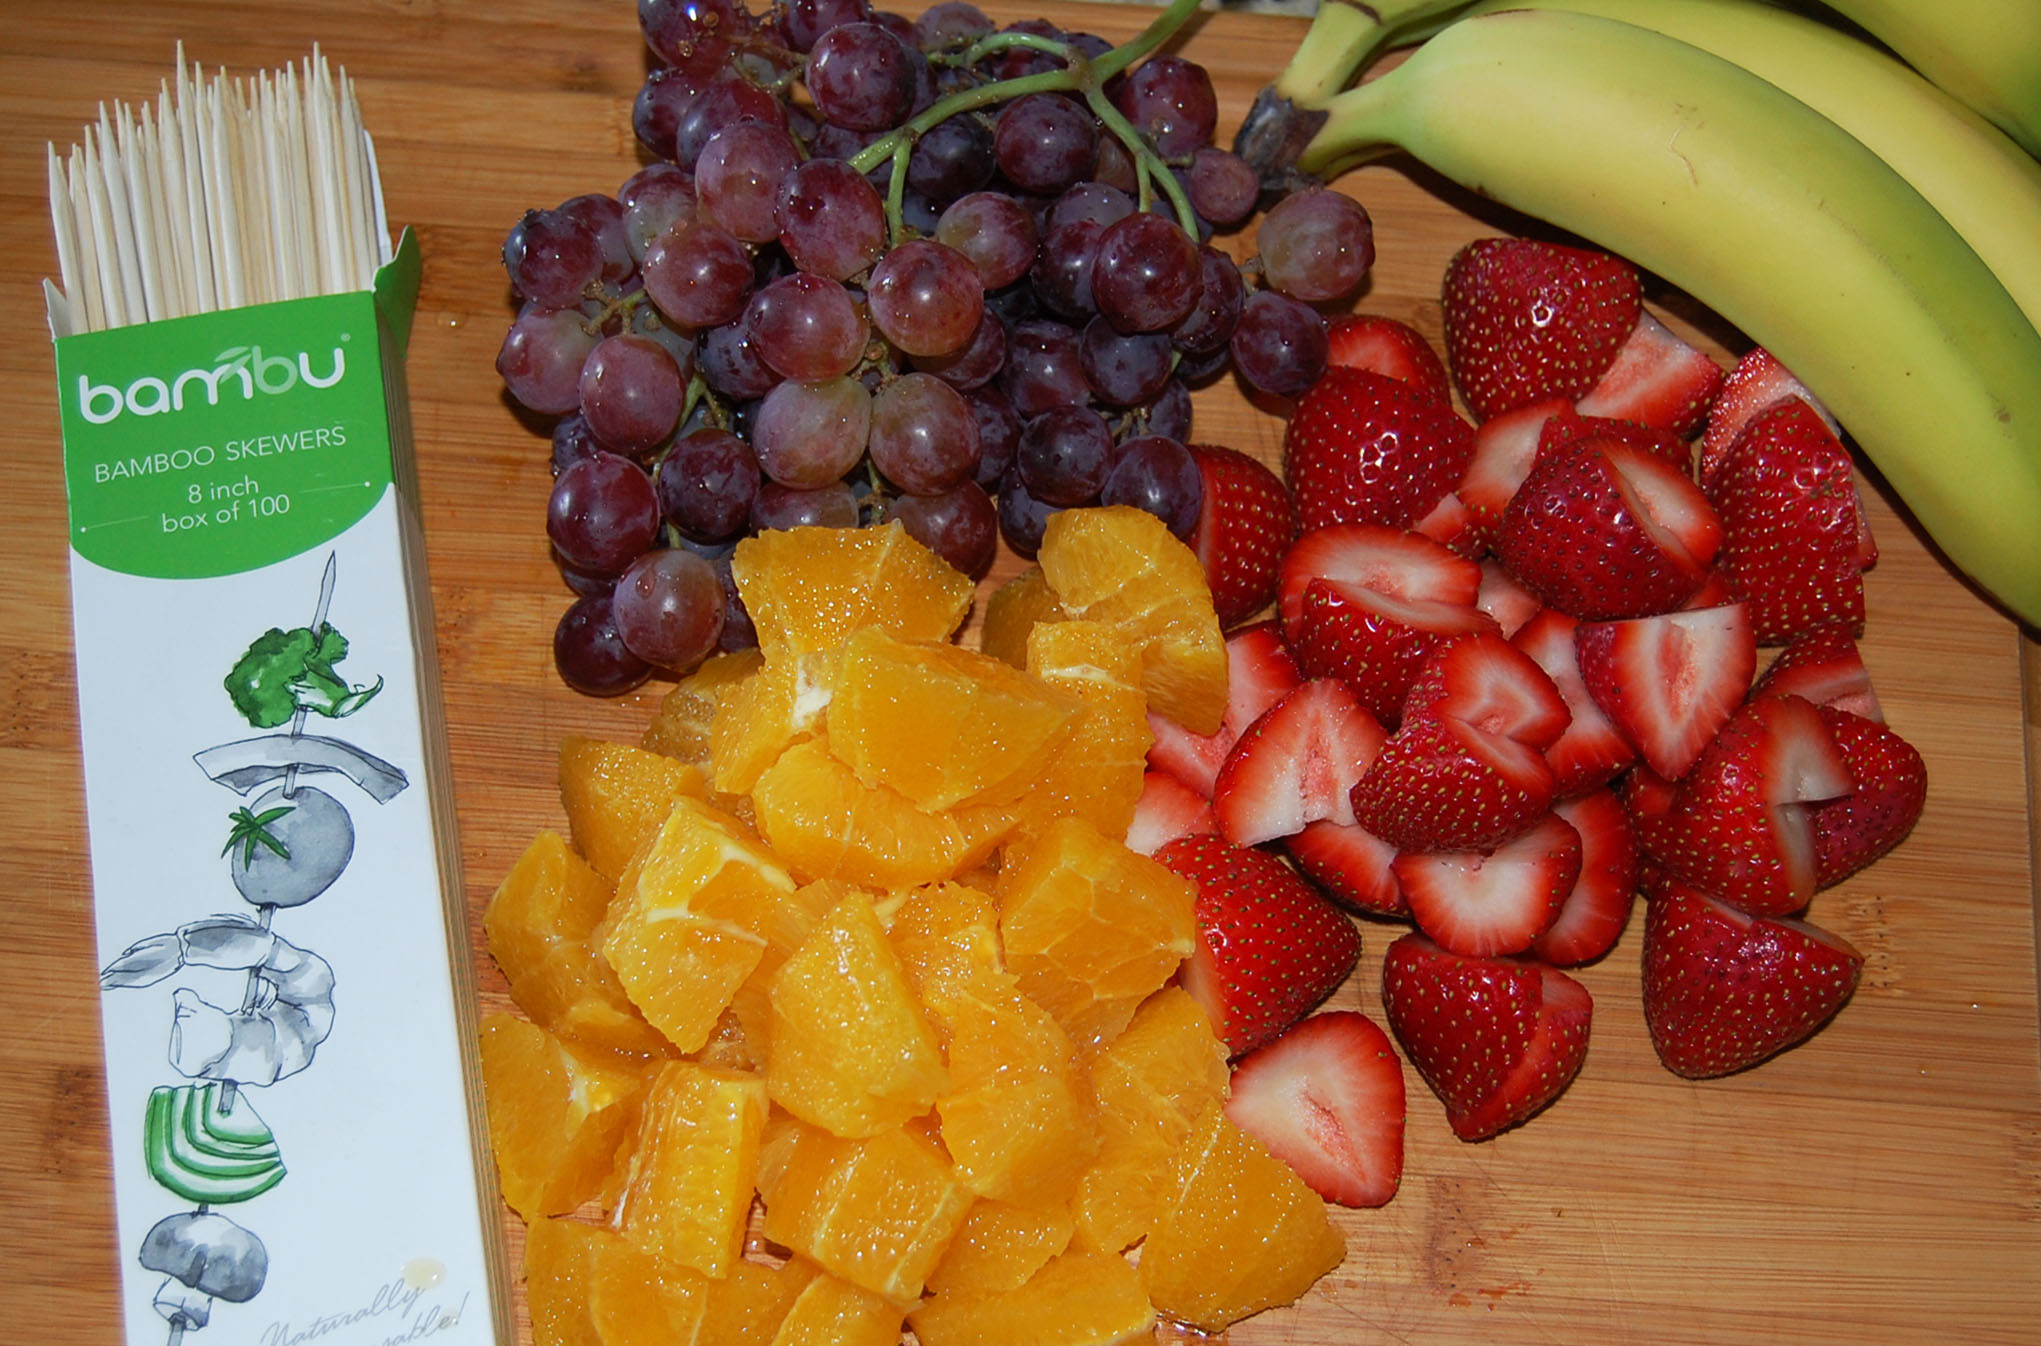 Healthy Snacks For Parties  Healthy Snacks for a School Party